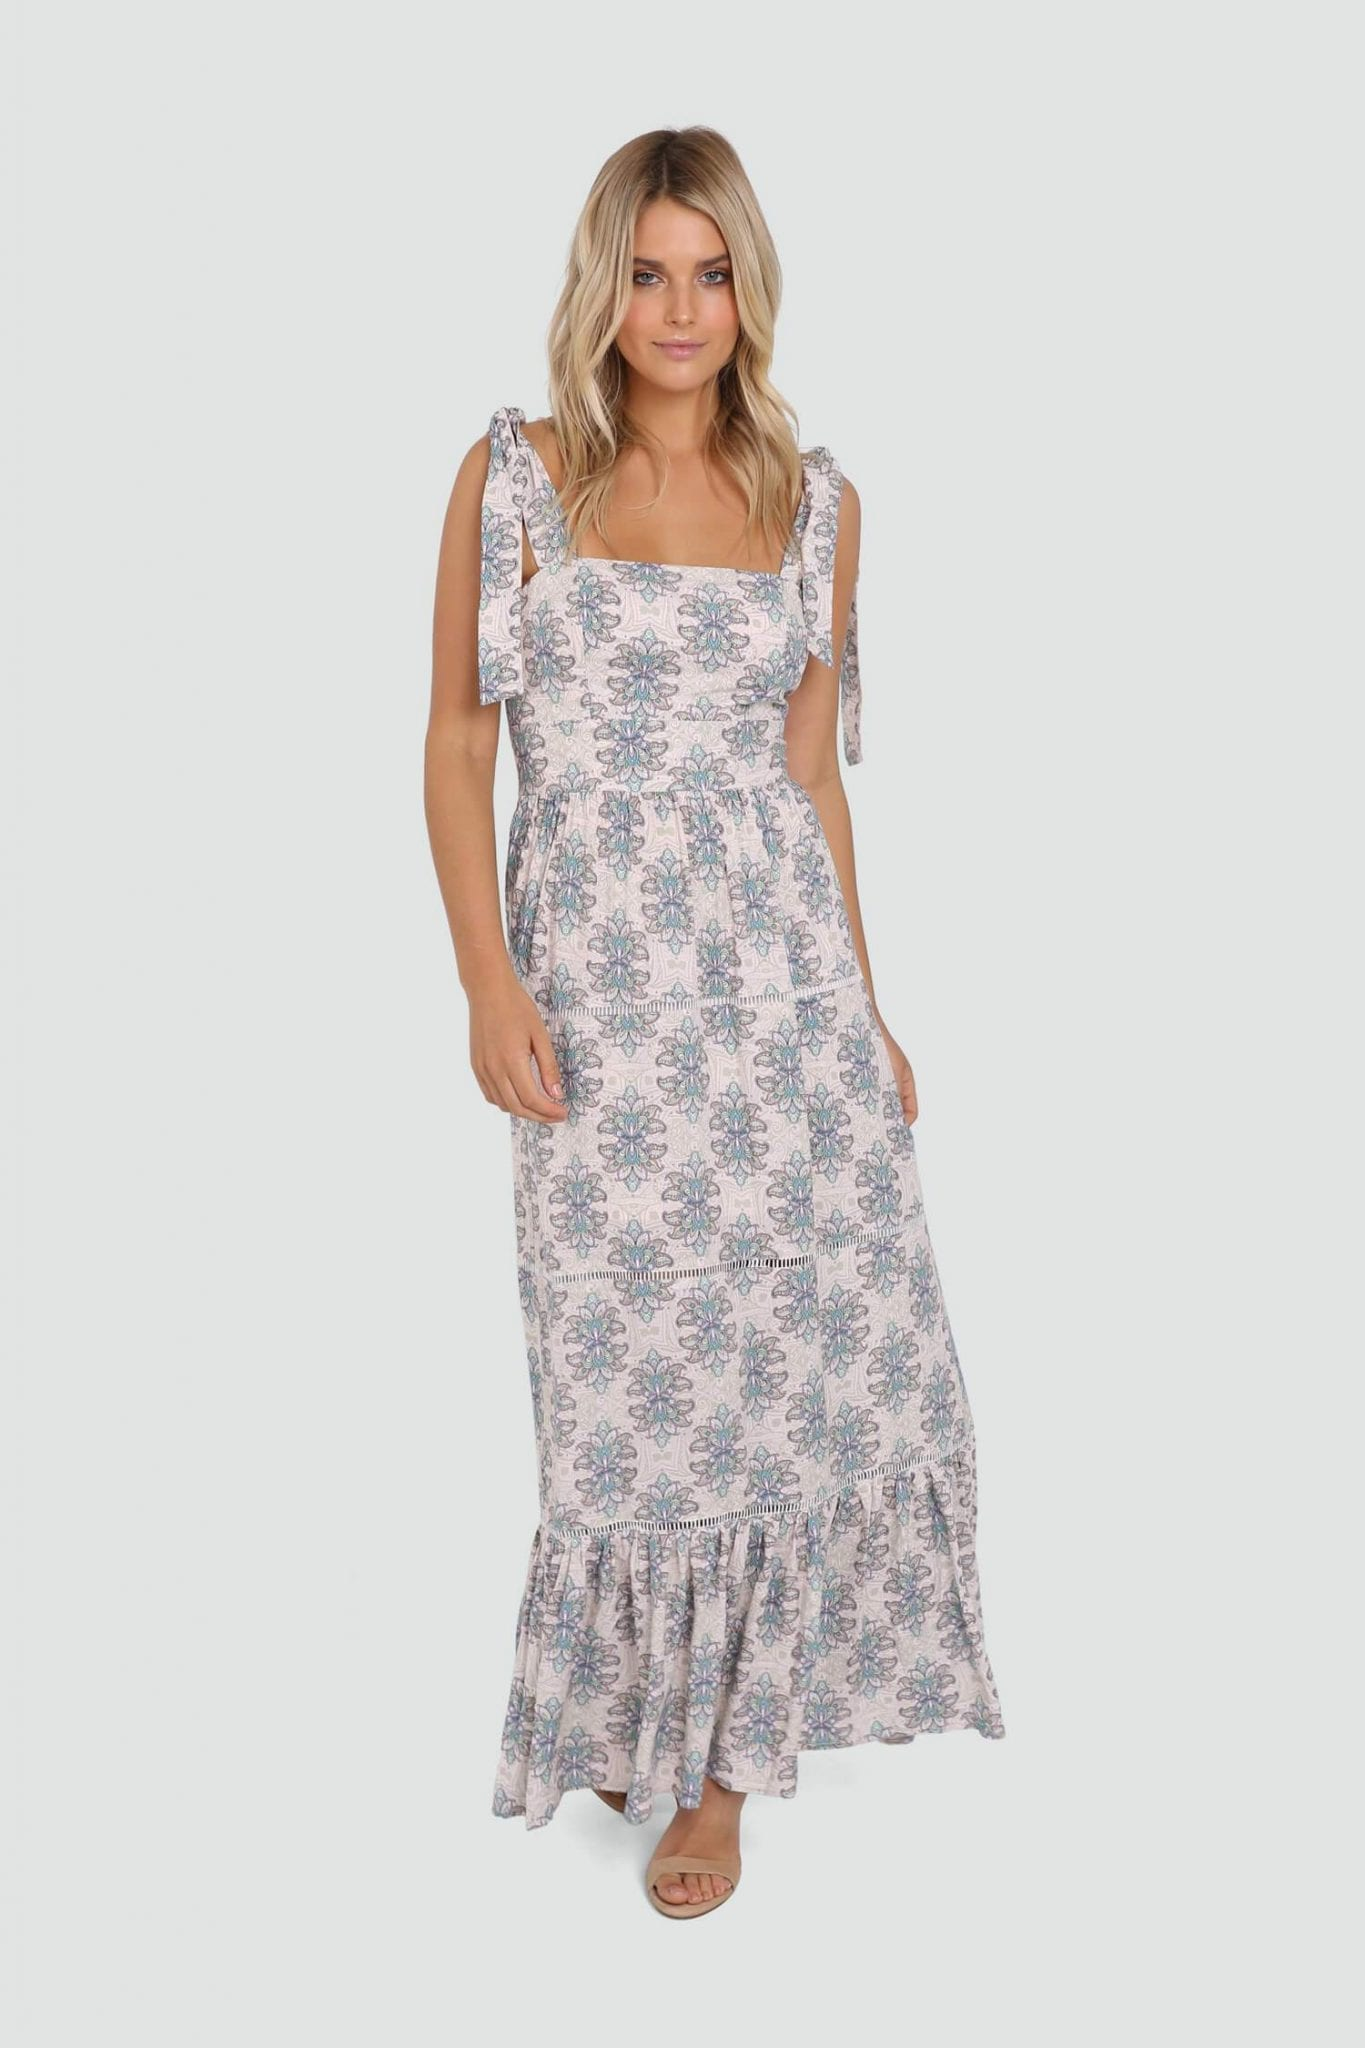 LOST IN LUNAR Evie Maxi Dress